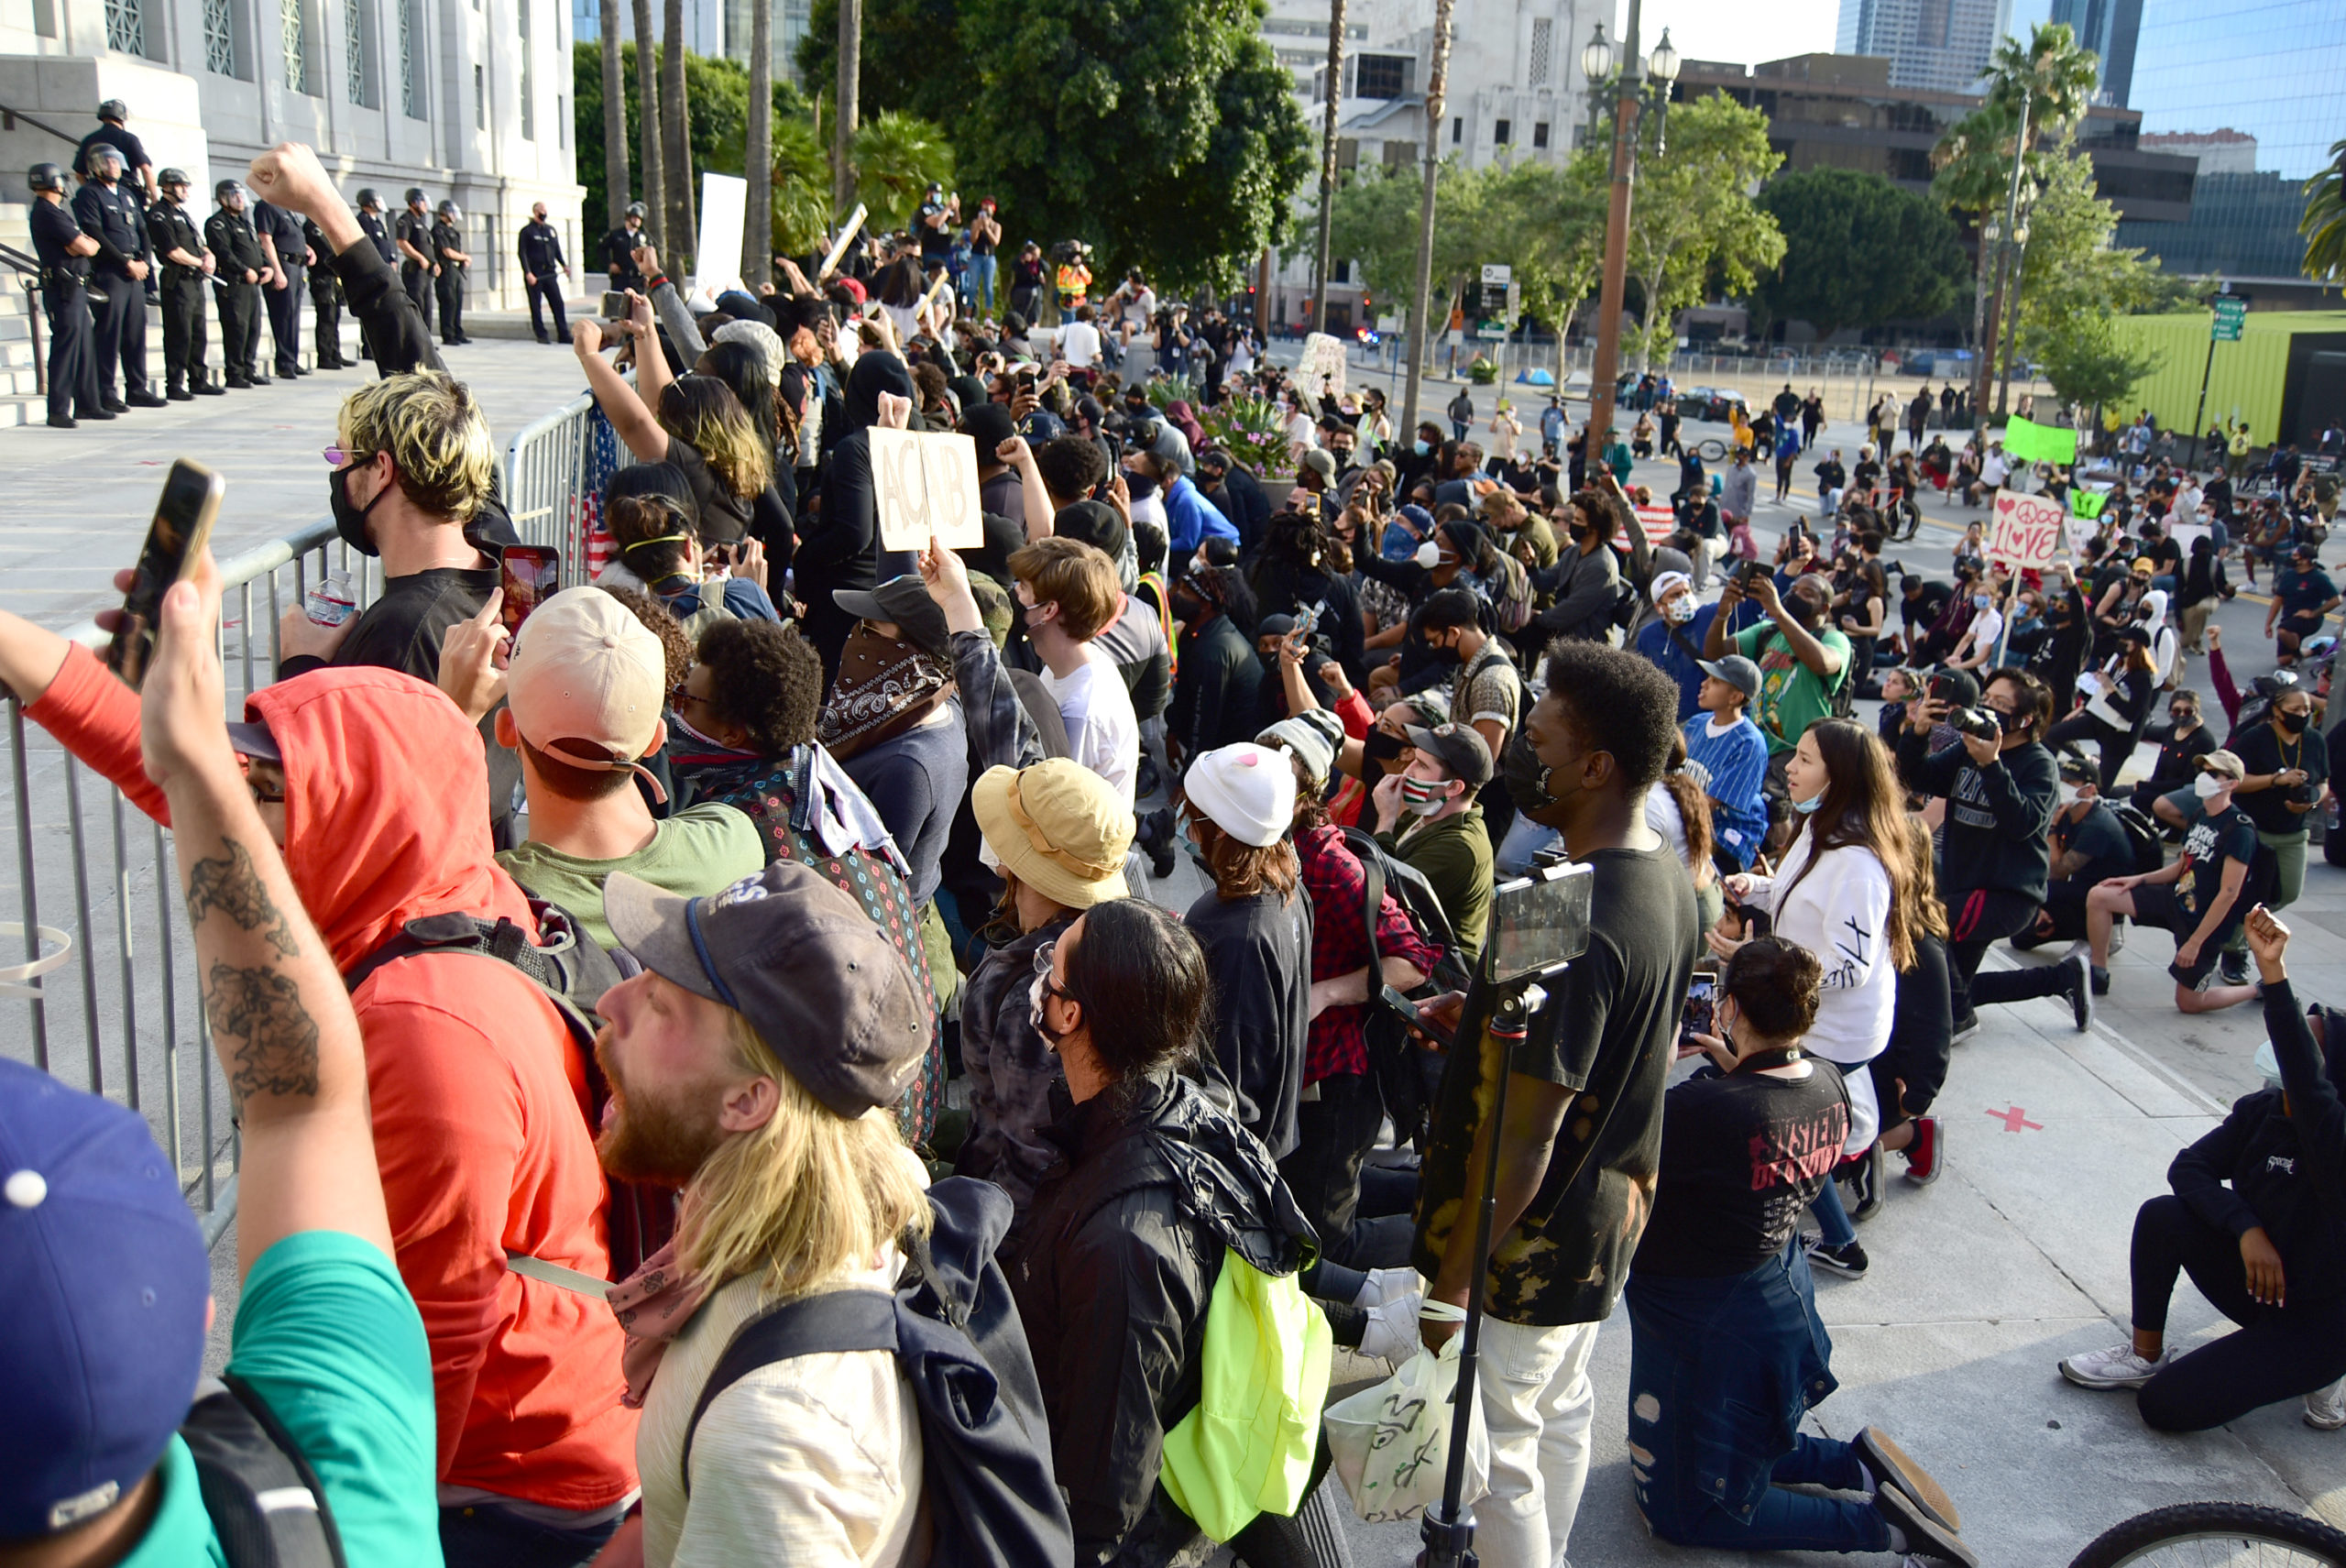 south-pasadena-news-05-31-2020-george-floyd-blm-black-lives-matter-protests-los-angeles-day-2-111